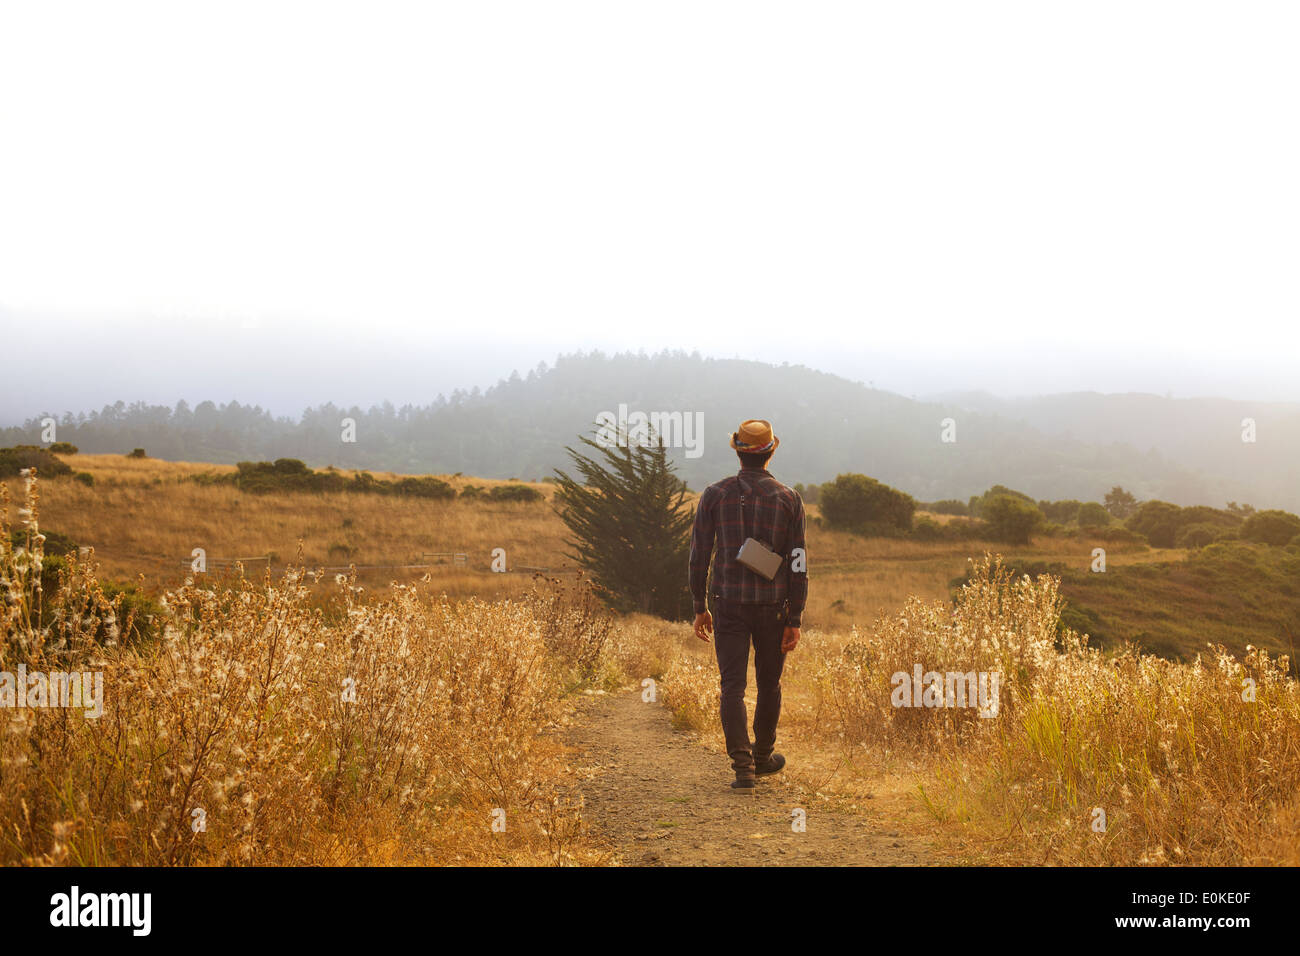 A man with a straw hat and a land camera walks down a path in a field of dry golden grass. - Stock Image